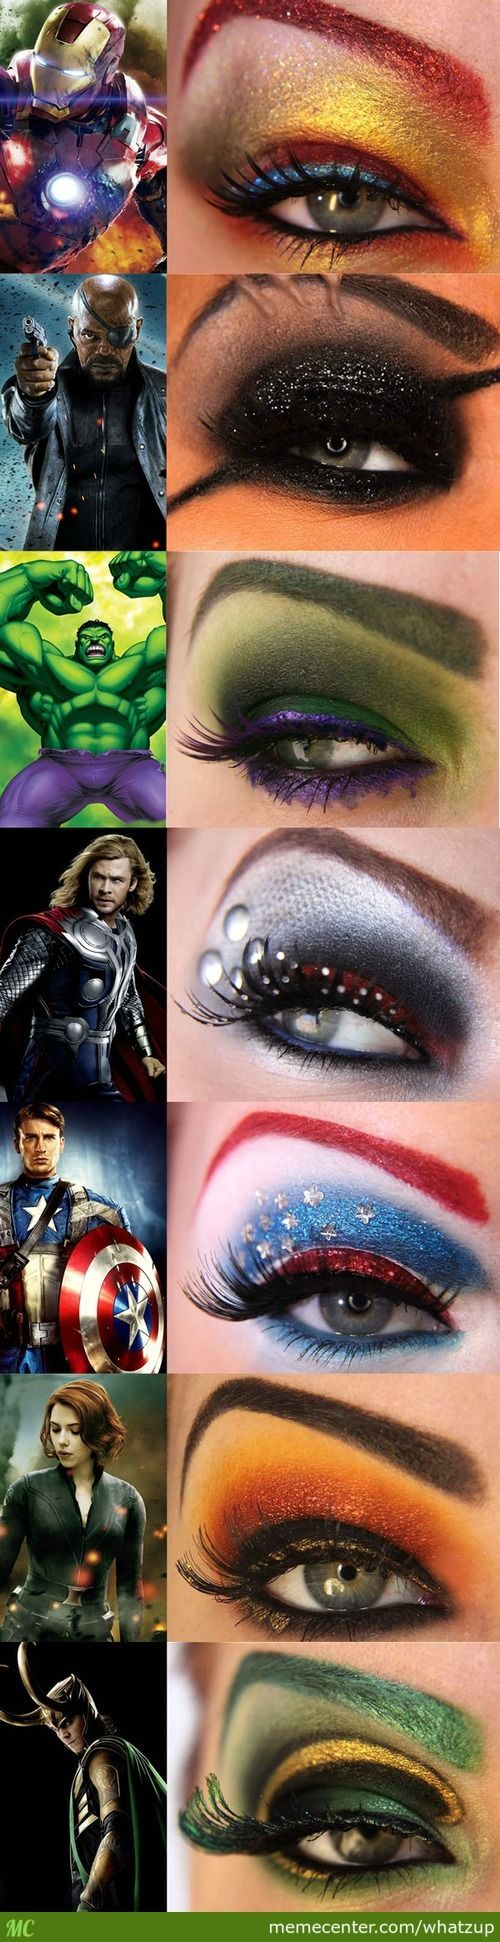 #Beauty | Avengers! Very cool! I don't think I am brave enough to do it, but I might for like Halloween. Lol